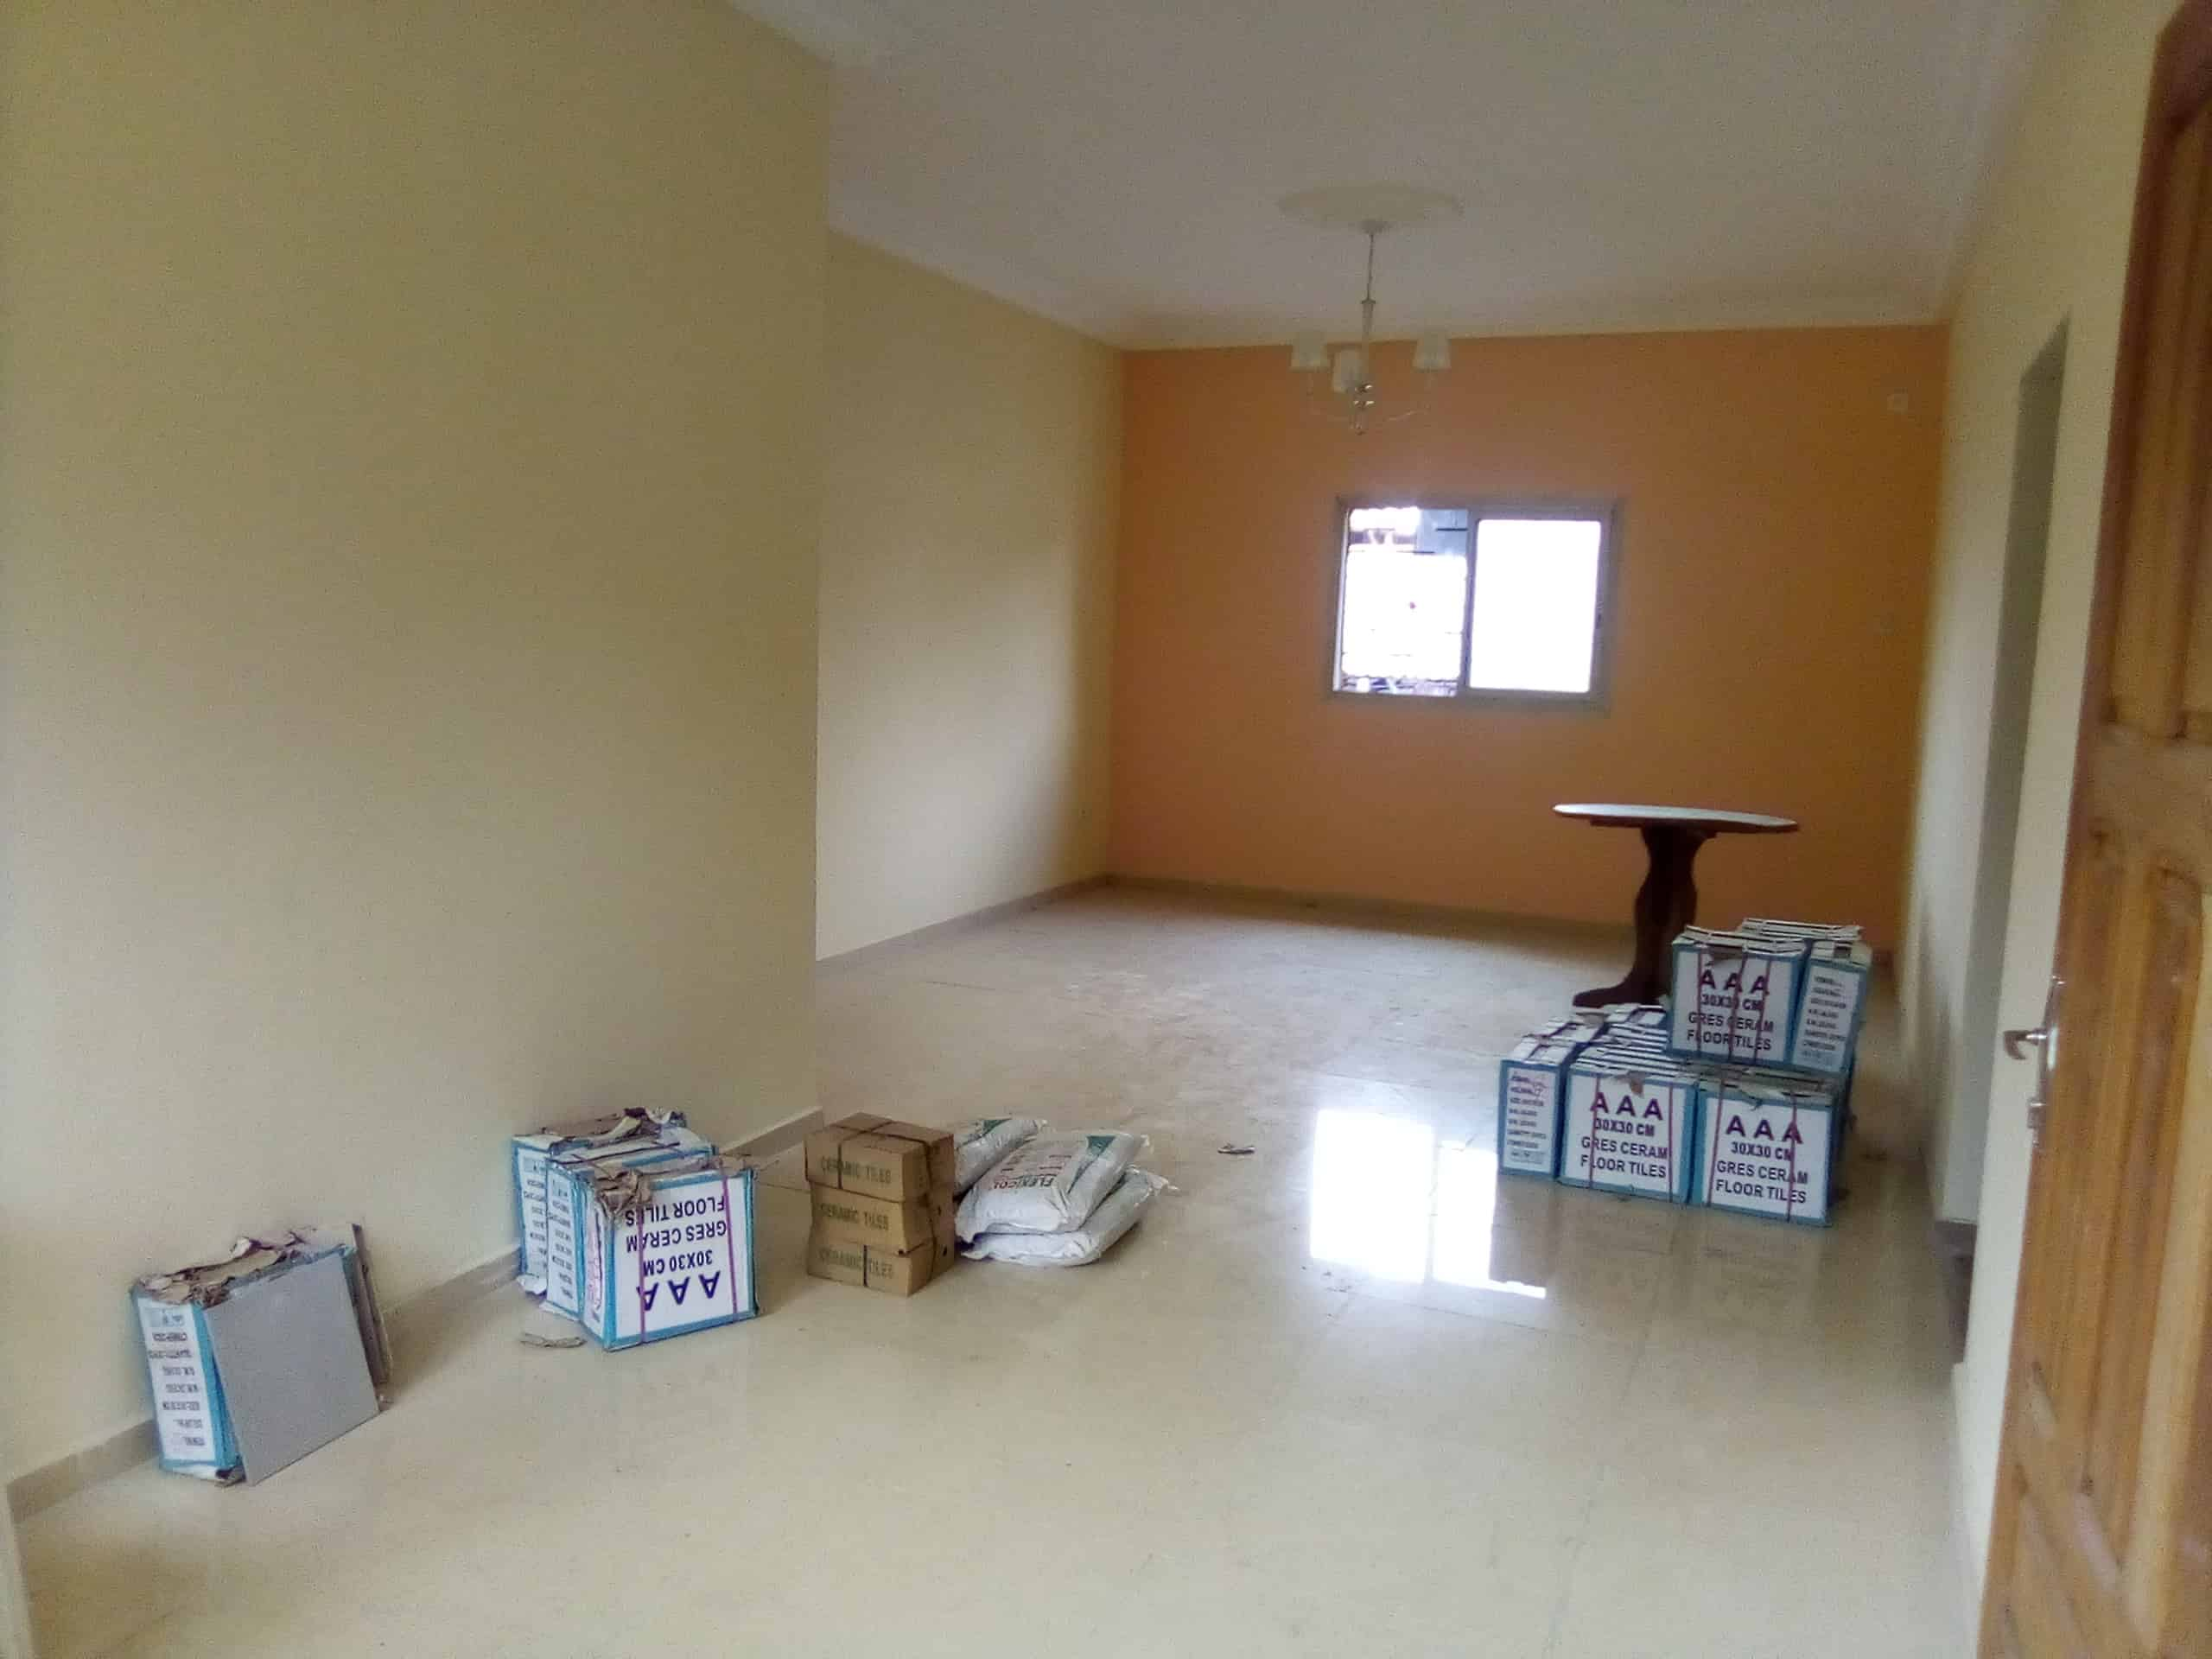 Apartment to rent - Douala, Makepe, BM - 1 living room(s), 3 bedroom(s), 2 bathroom(s) - 120 000 FCFA / month